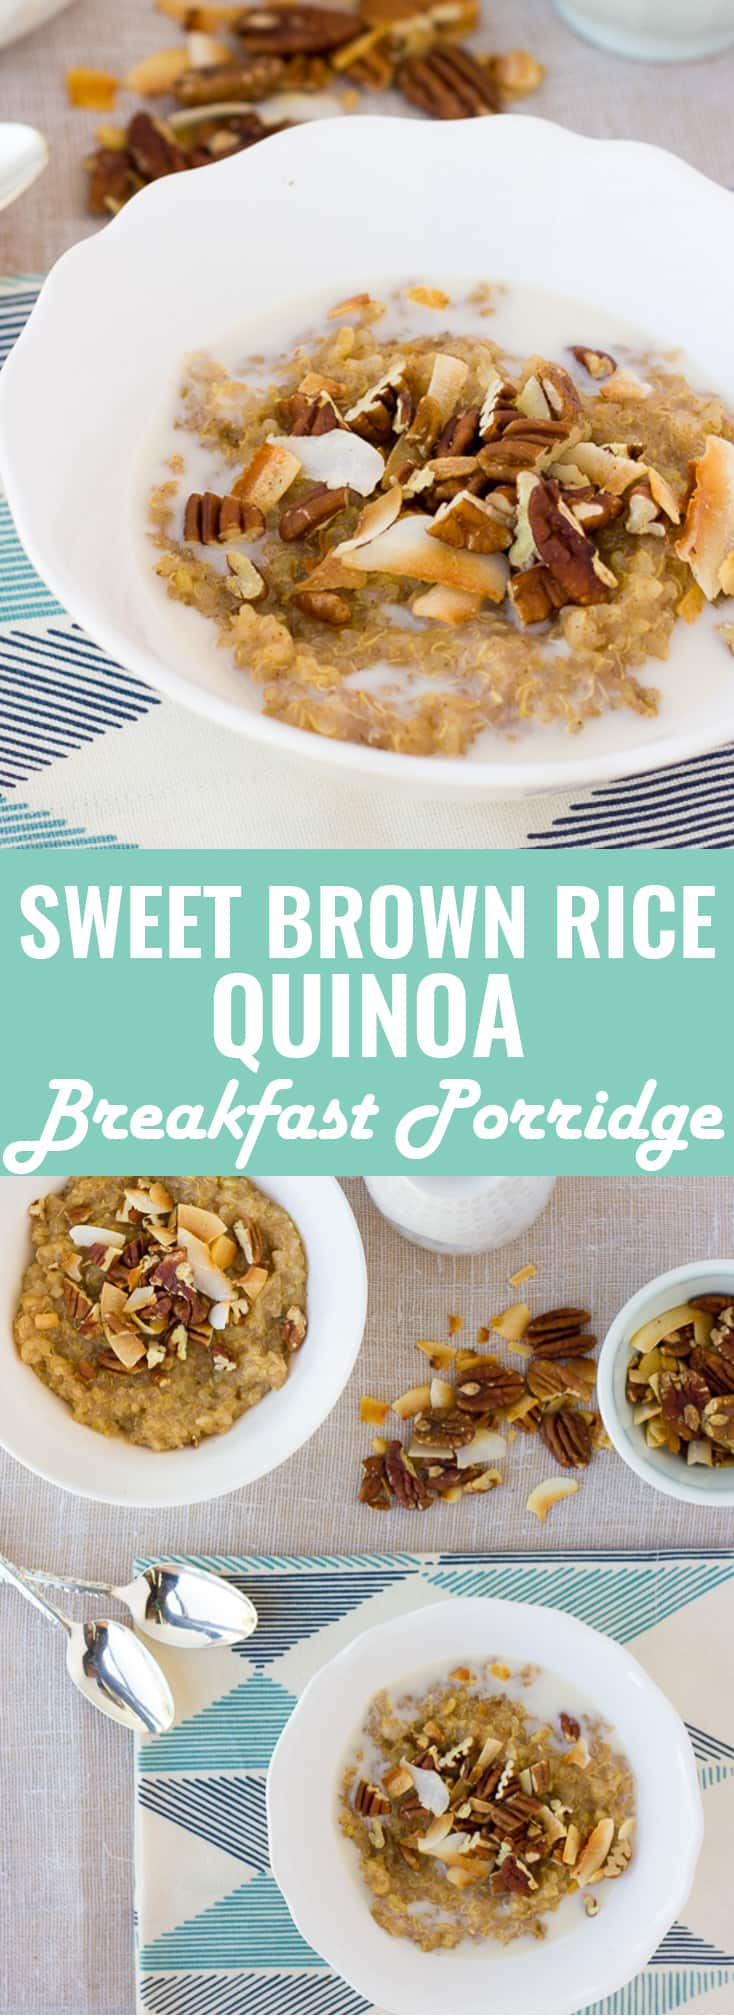 Sweet Brown Rice Quinoa Breakfast Porridge! Make a big batch ahead of time for quick nourishing breakfasts on-the-go. Gluten/Dairy-Free!